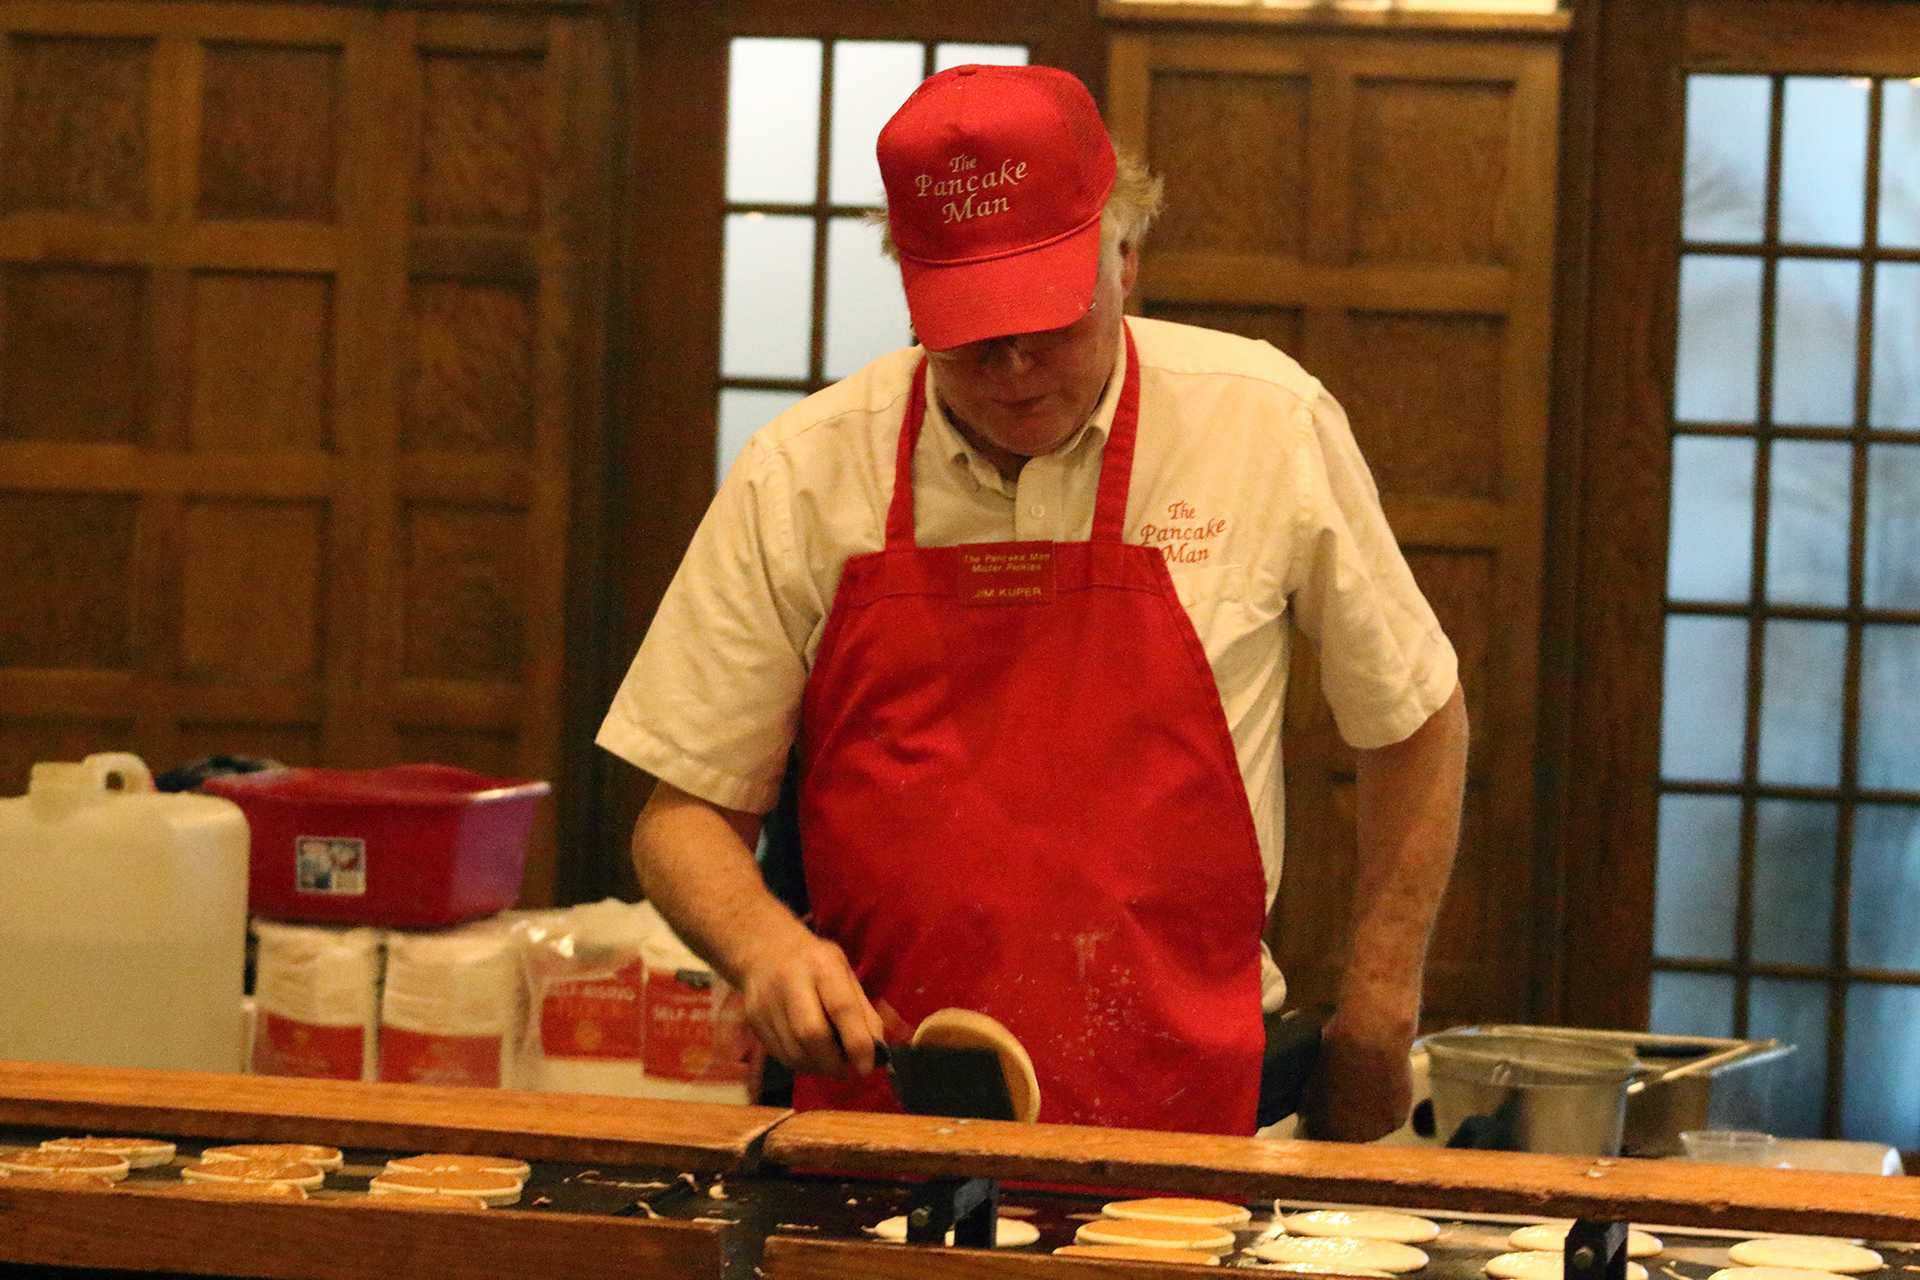 The Pancake Man flips hundreds of pancakes for students in the IMU on Monday, Dec. 11, 2017. The event was part of finals week events held to relieve the stress of students. (Ashley Morris/The Daily Iowan)